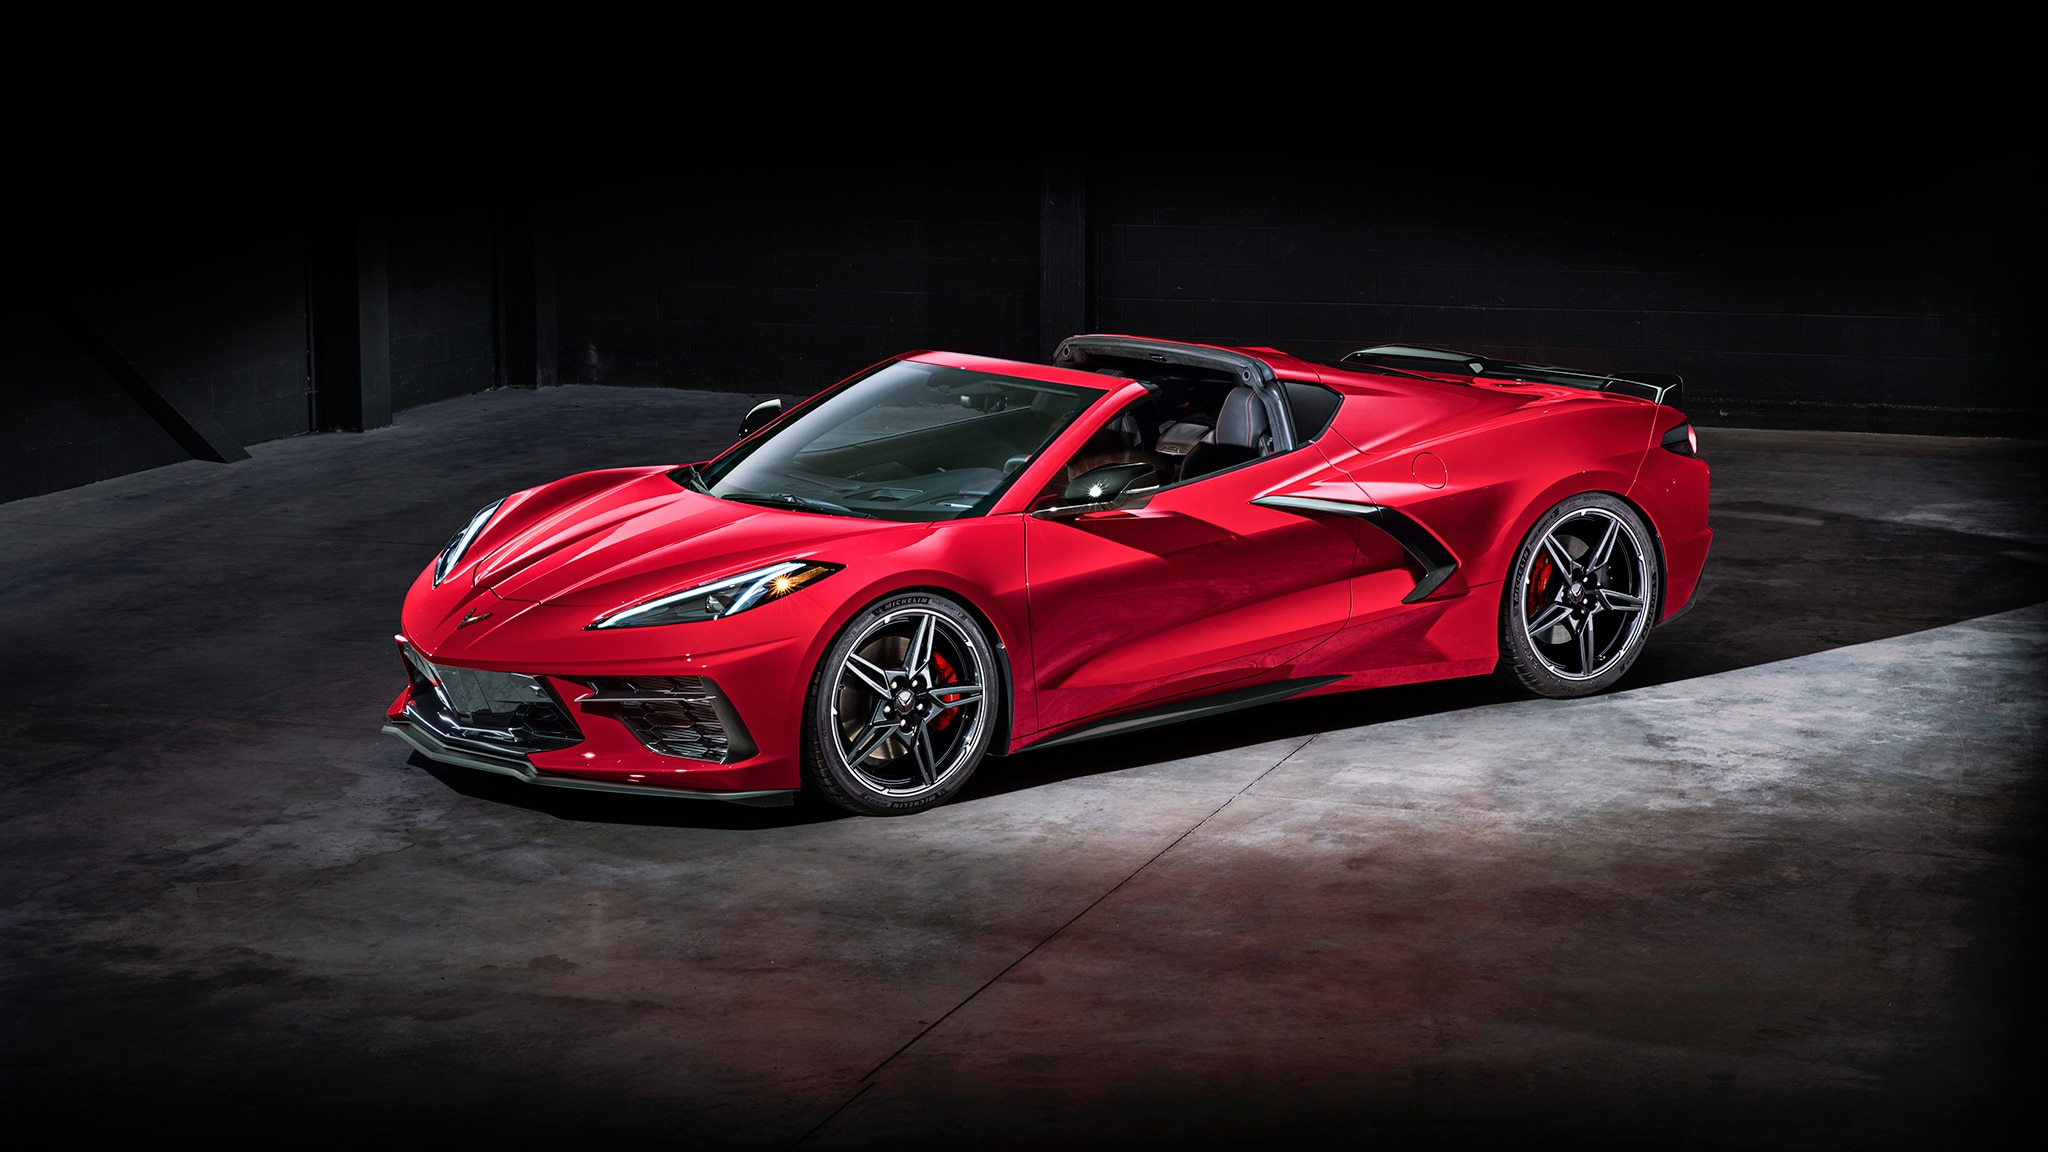 2020 Chevy Corvette C8: Hot Takes, Live from the Reveal | Car in My Life